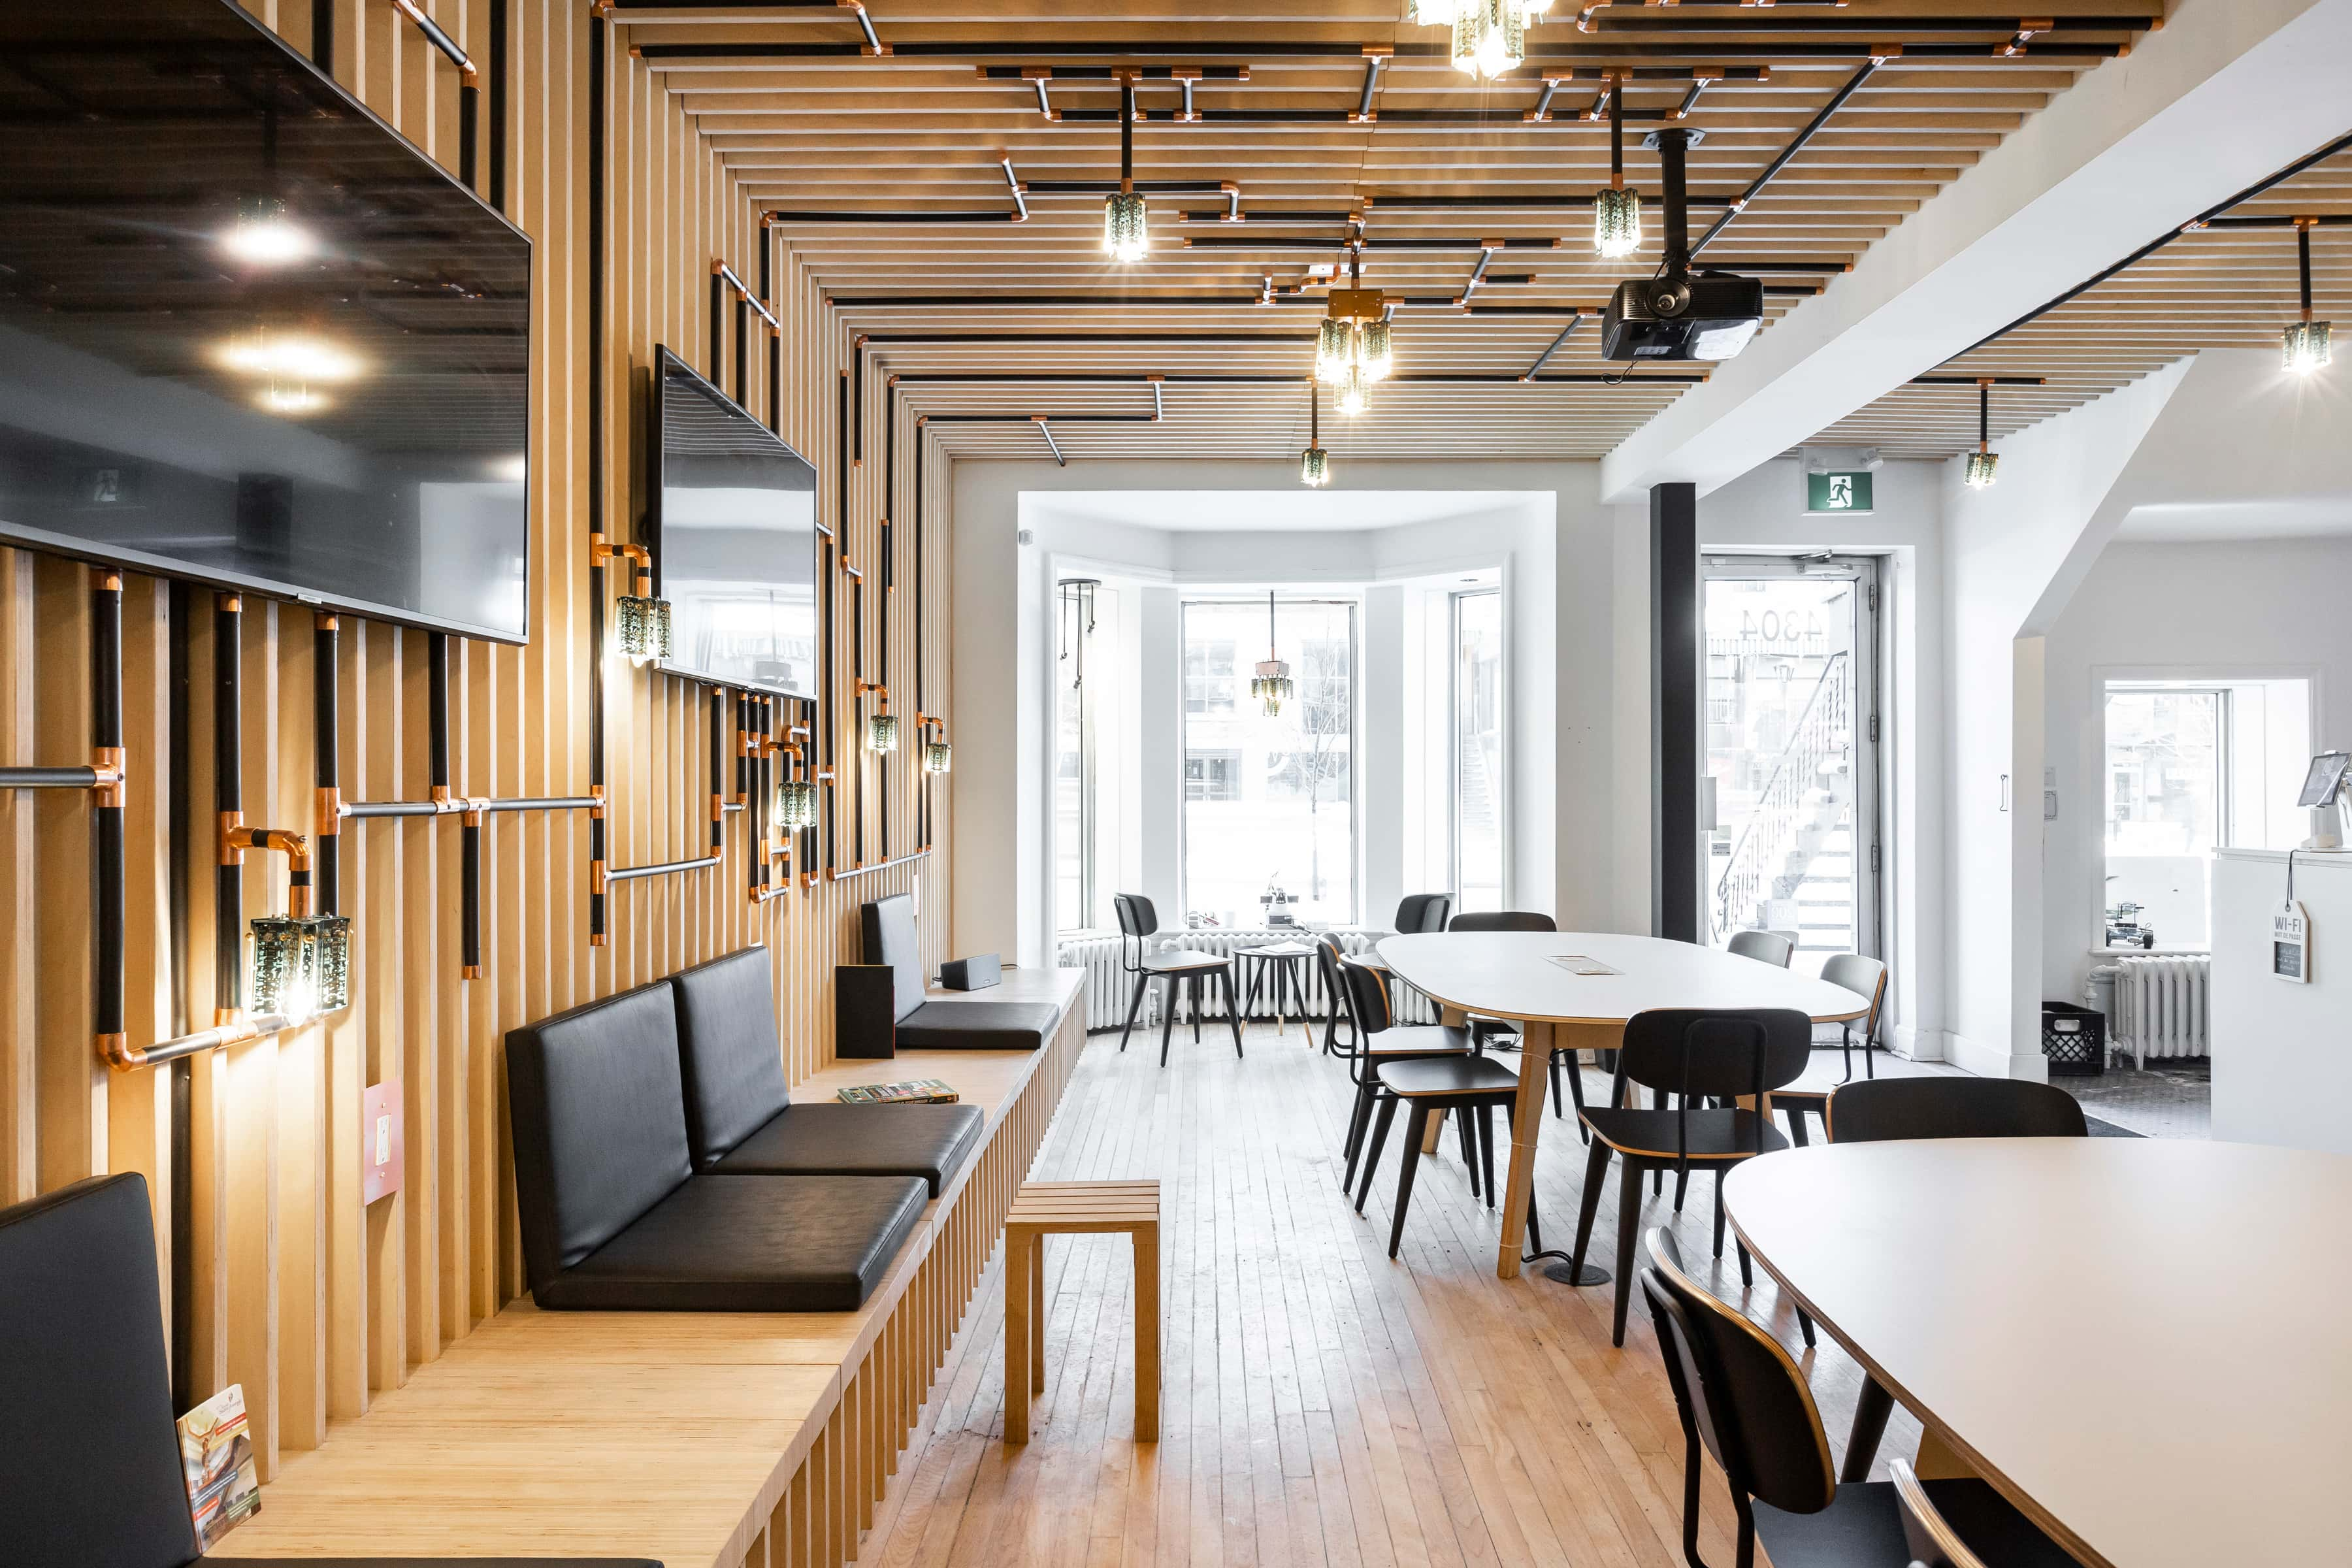 design cafe with wooden bench and beige tables